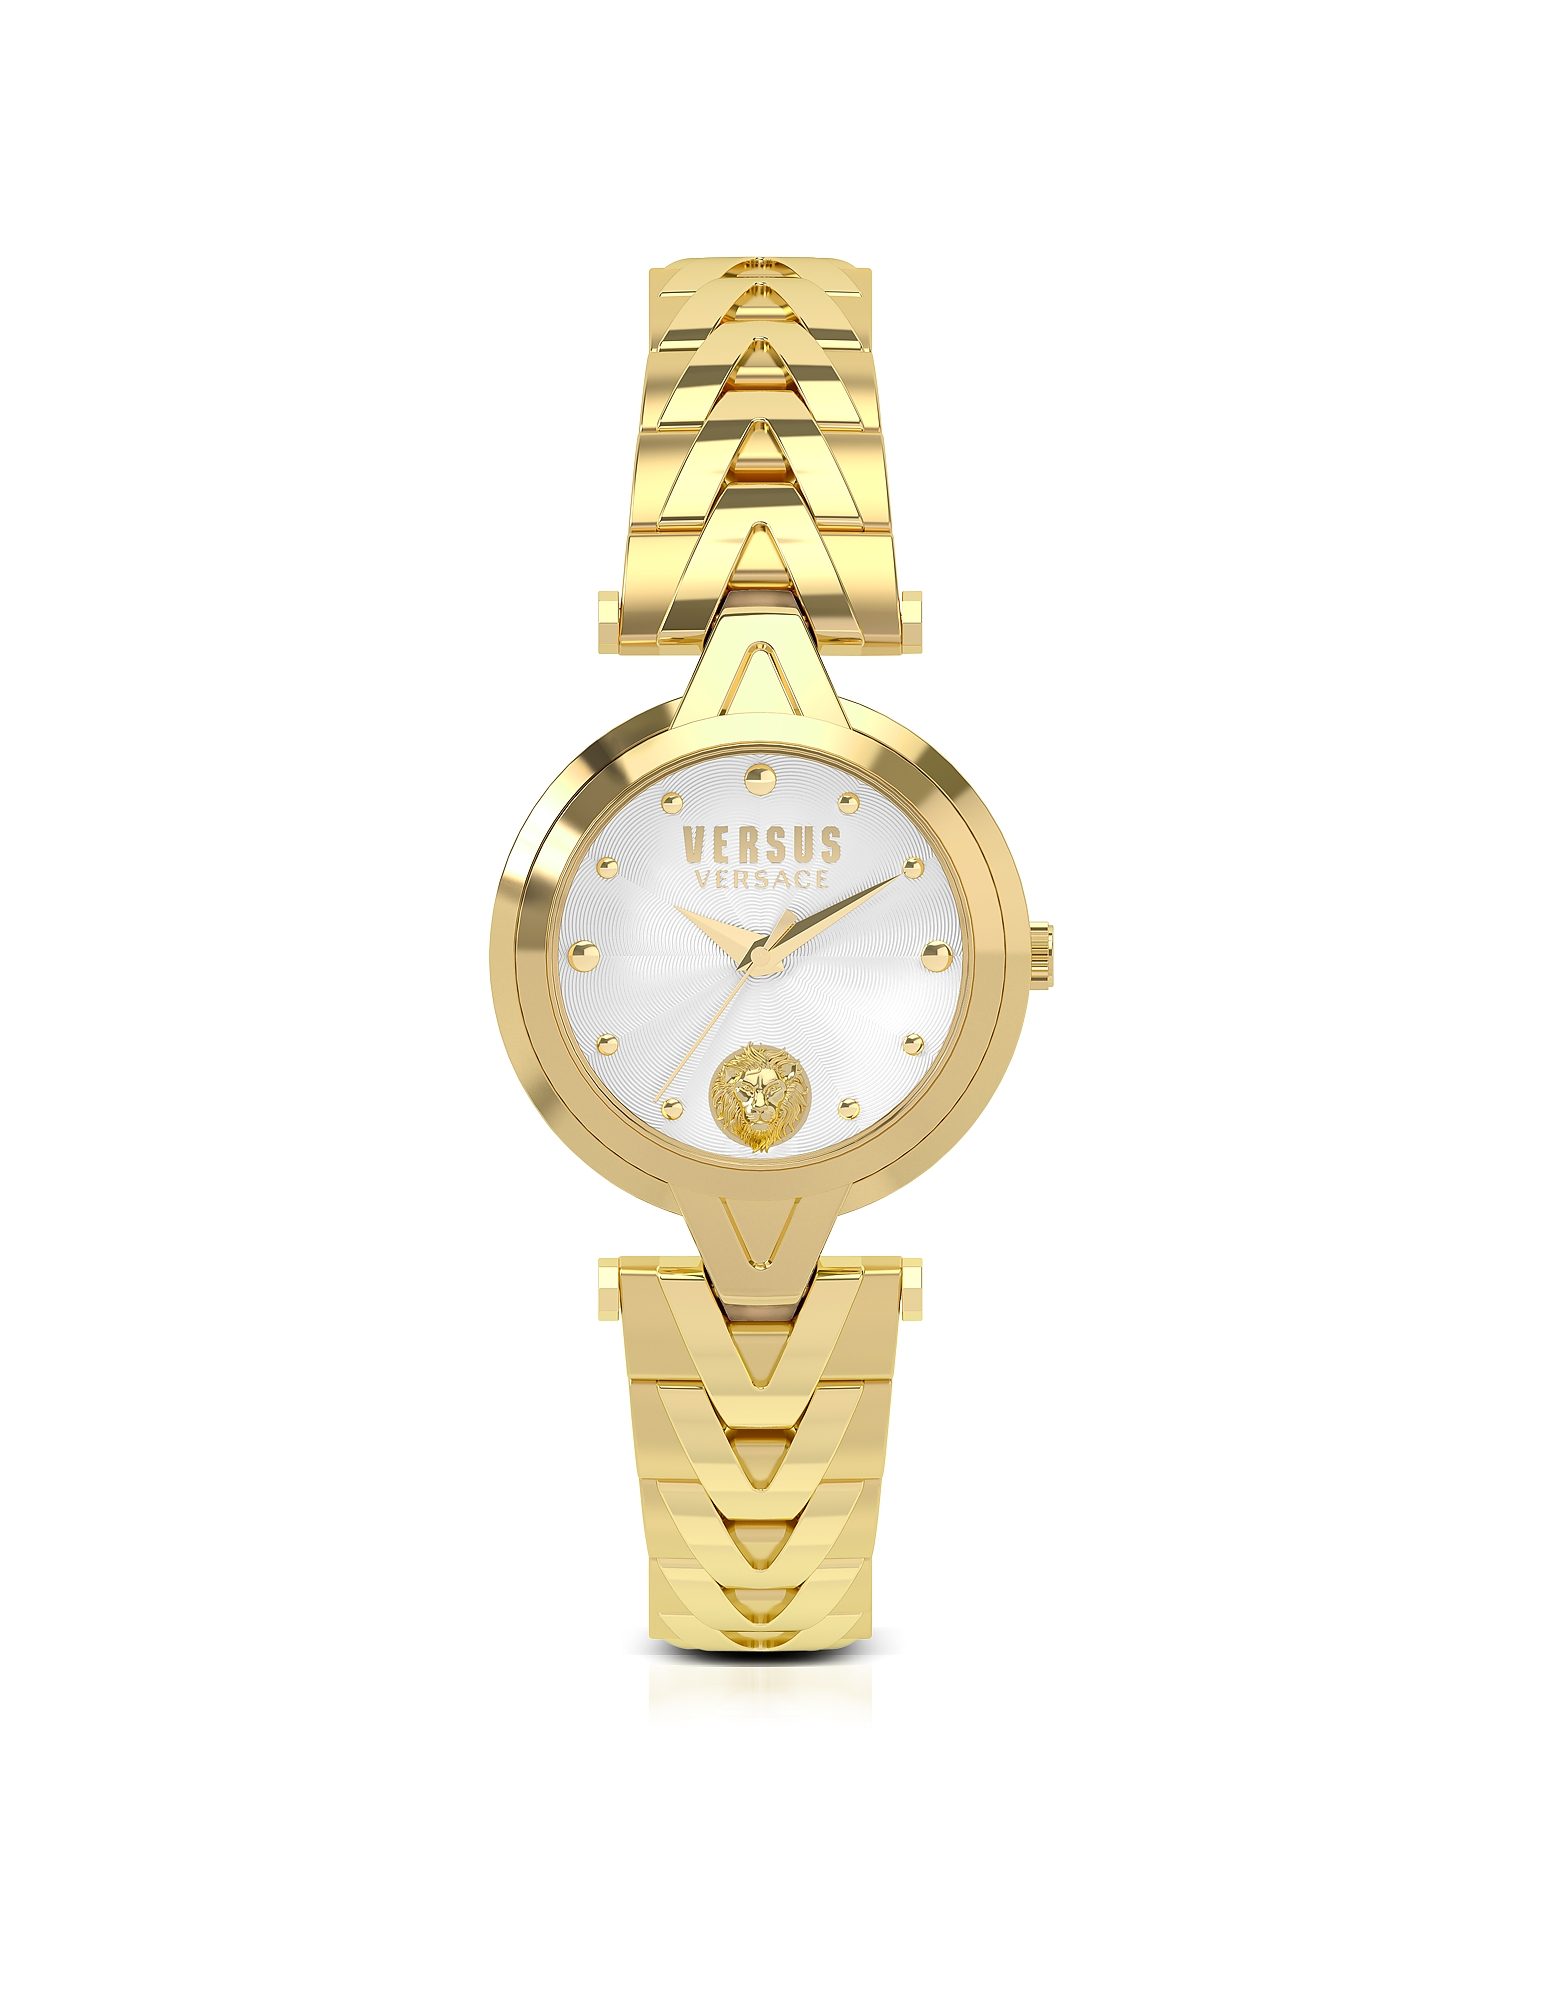 Versace Versus Women's Watches, V Versus Gold Tone Stainless Steel Women's Bracelet Watch